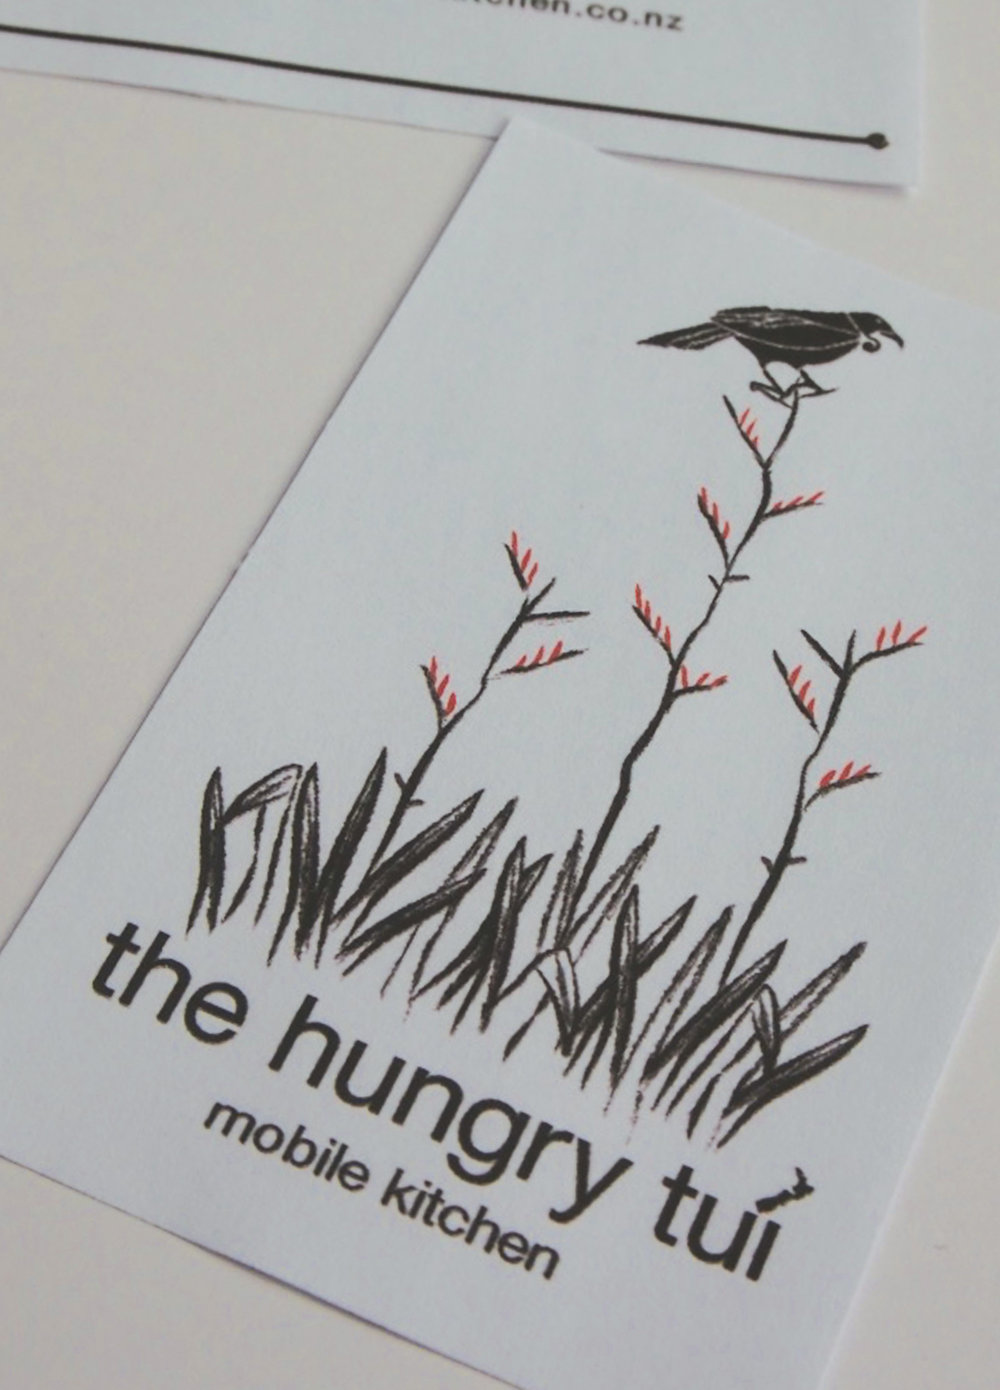 [The Hungry Tui]  Creation of a brand identity for a new business . September 2013. [Above front of the business card and crop of back]